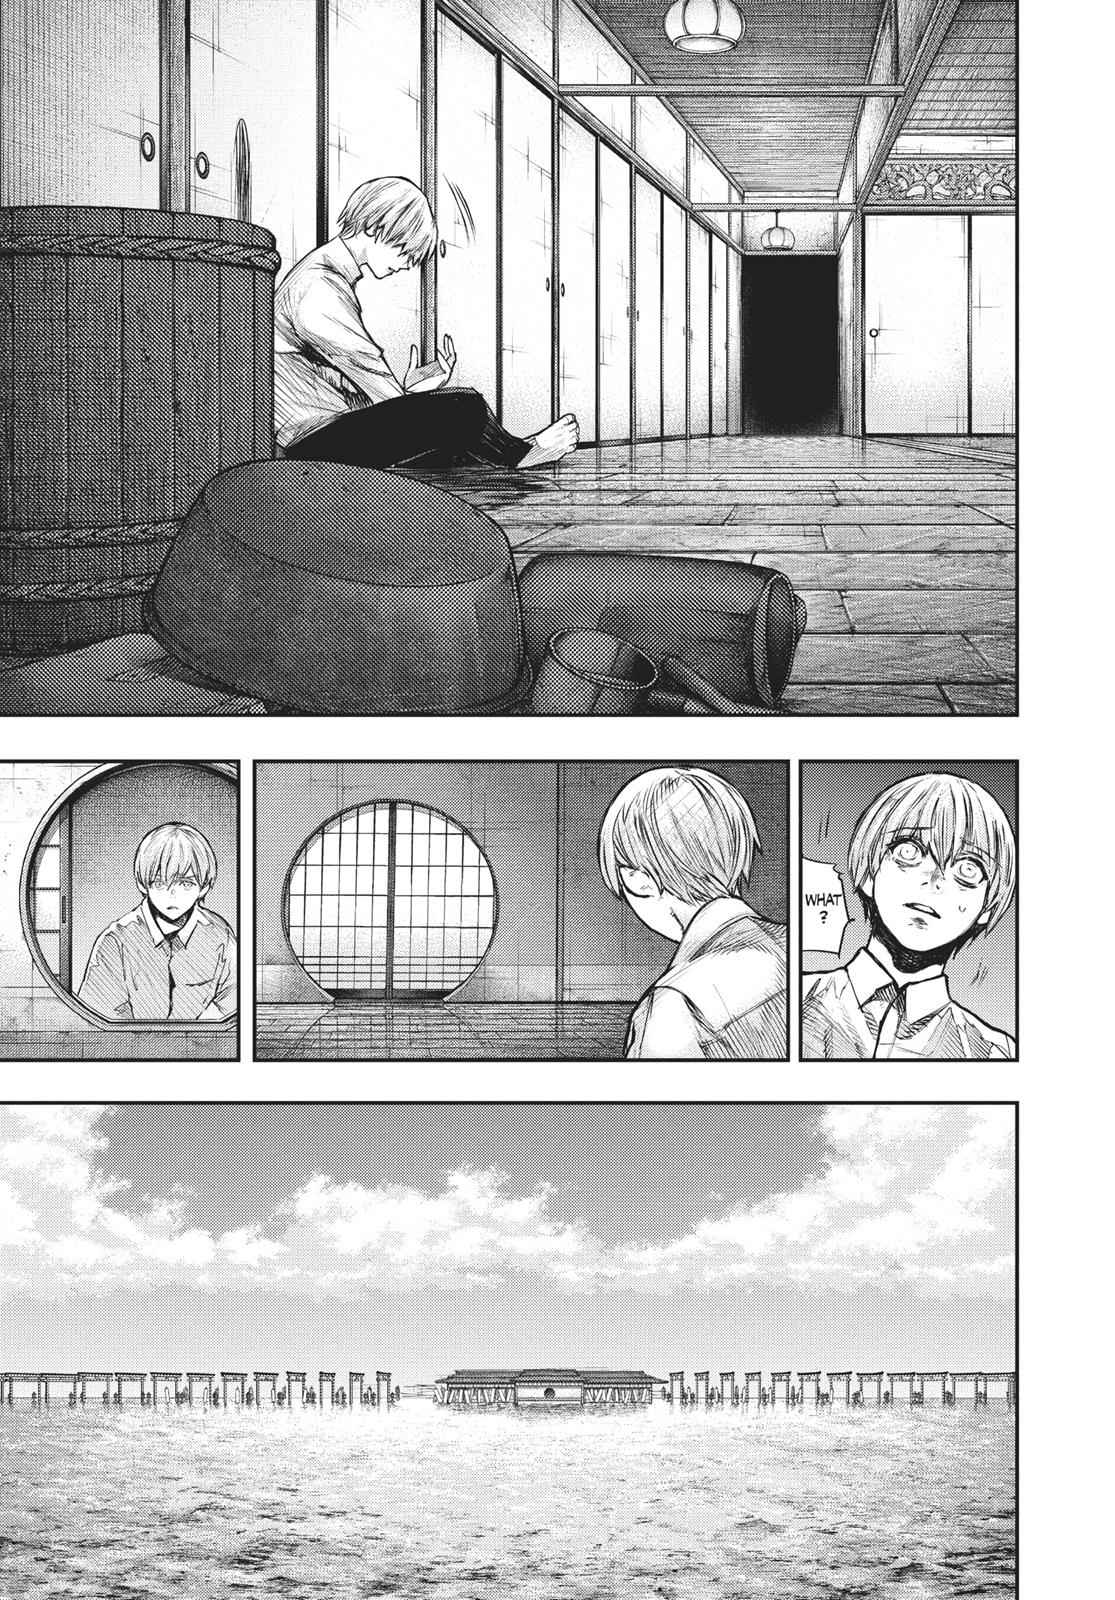 Tokyo Ghoul:re Chapter 157 Page 4